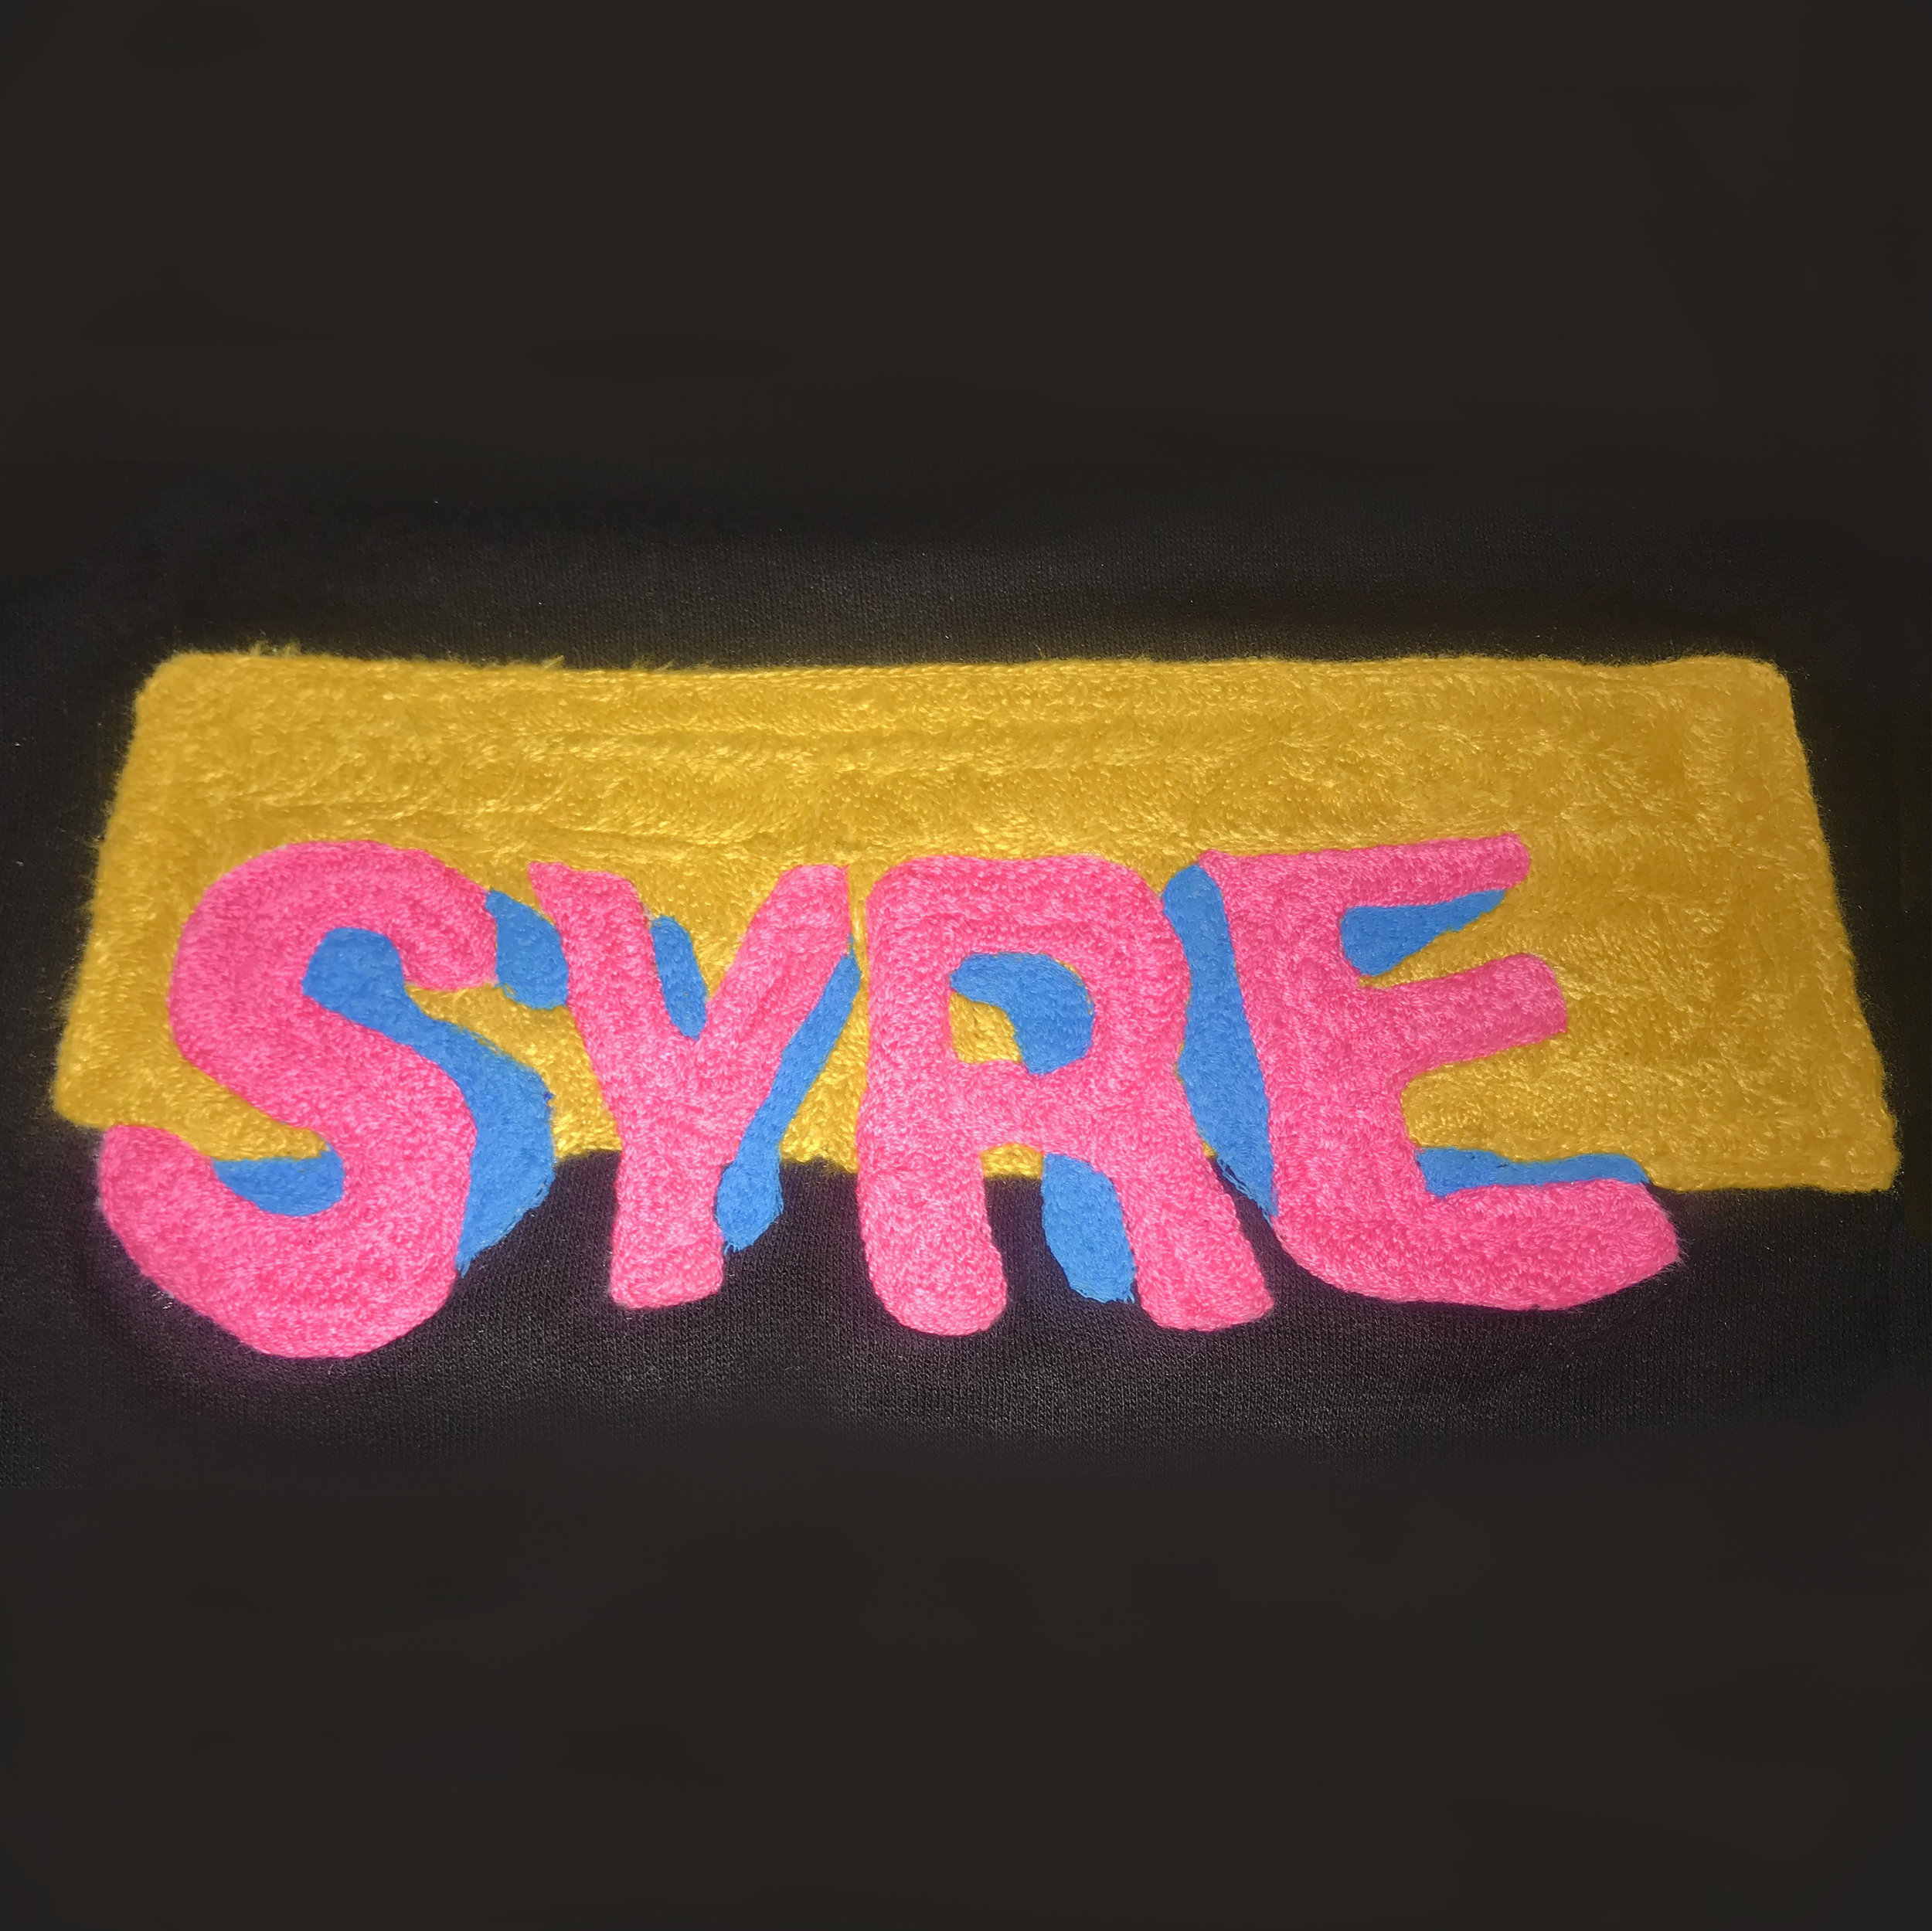 SYRE close up copy 101 SQUARE.jpg